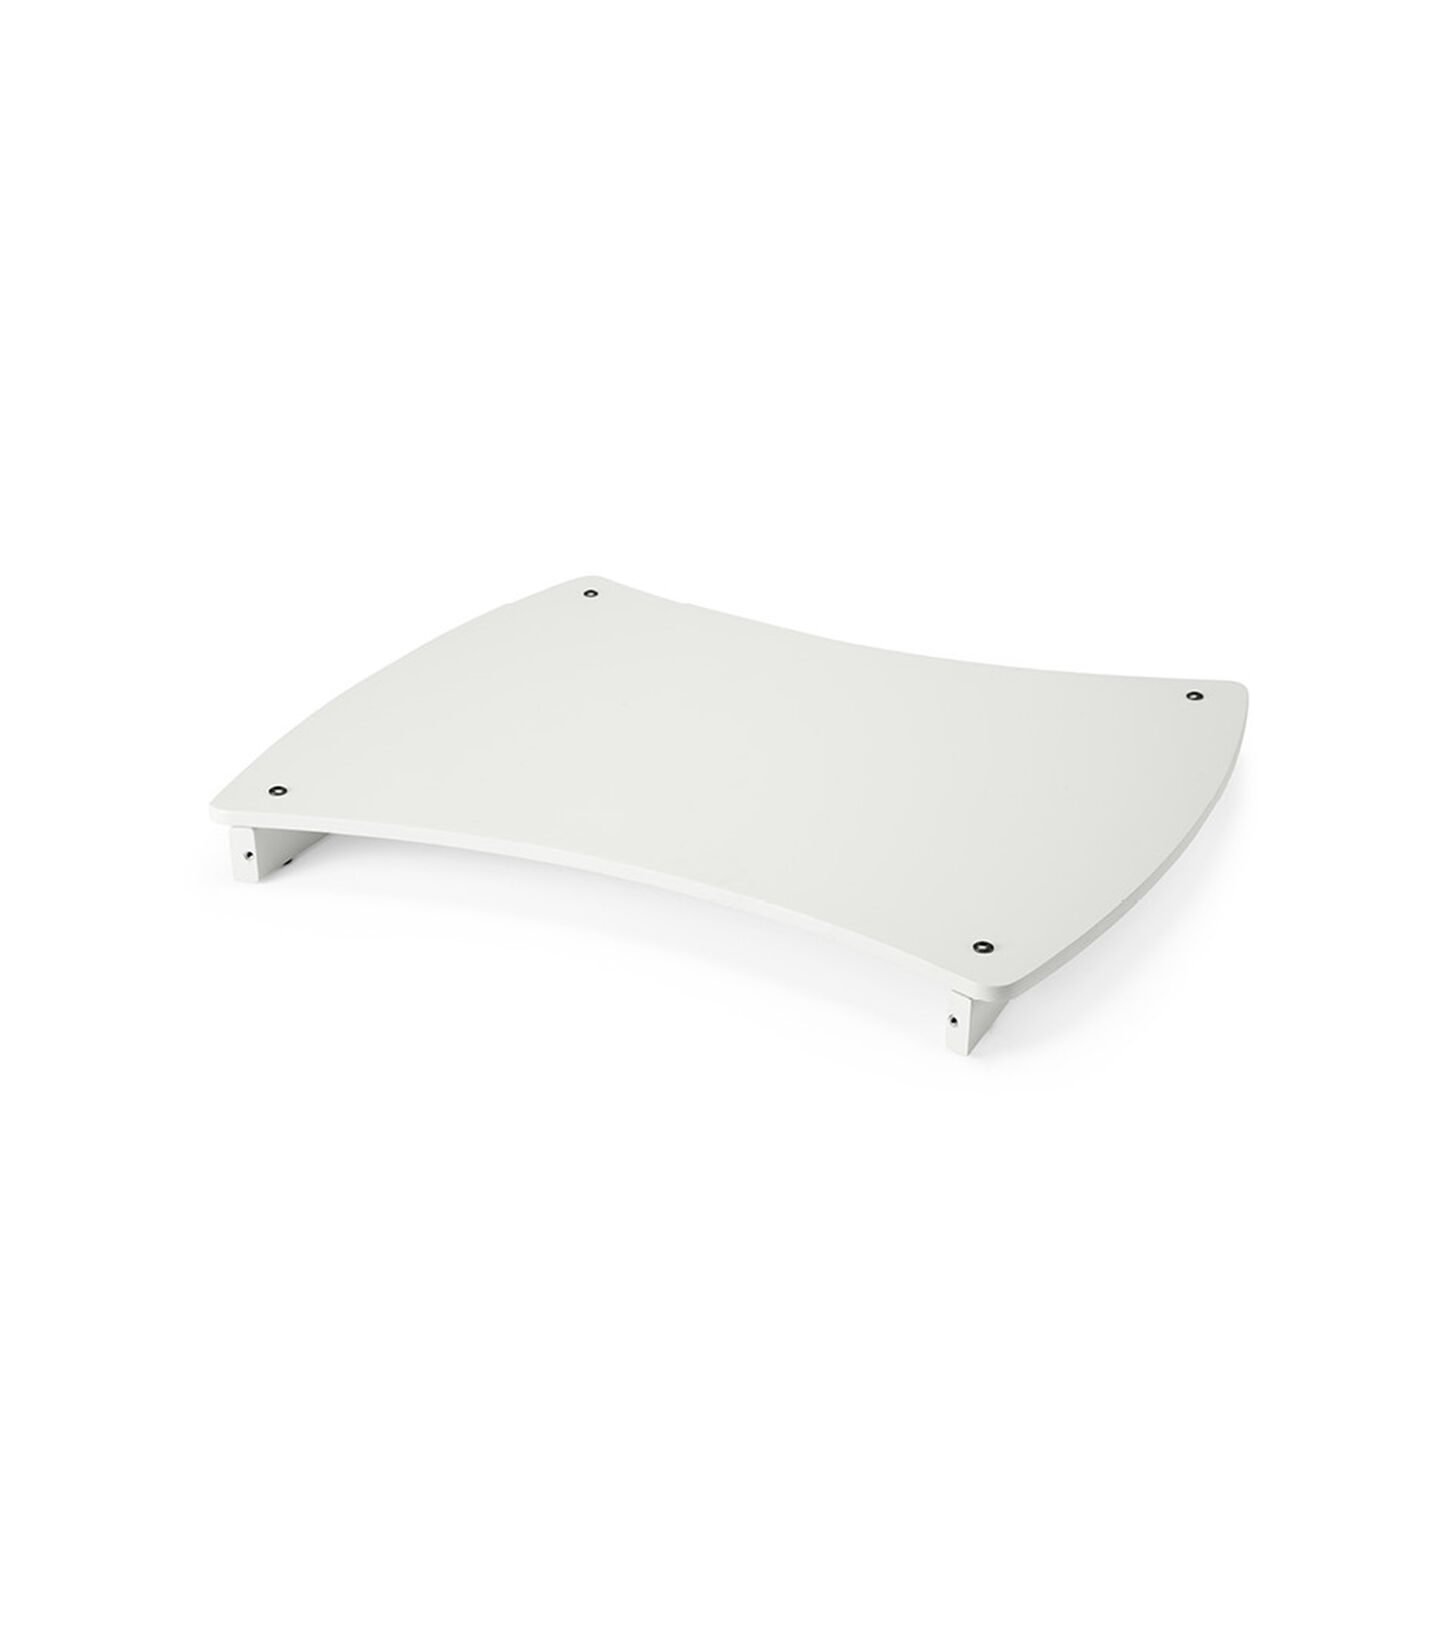 Stokke® Care™ Topshelf compl Bianco, Bianco, mainview view 2